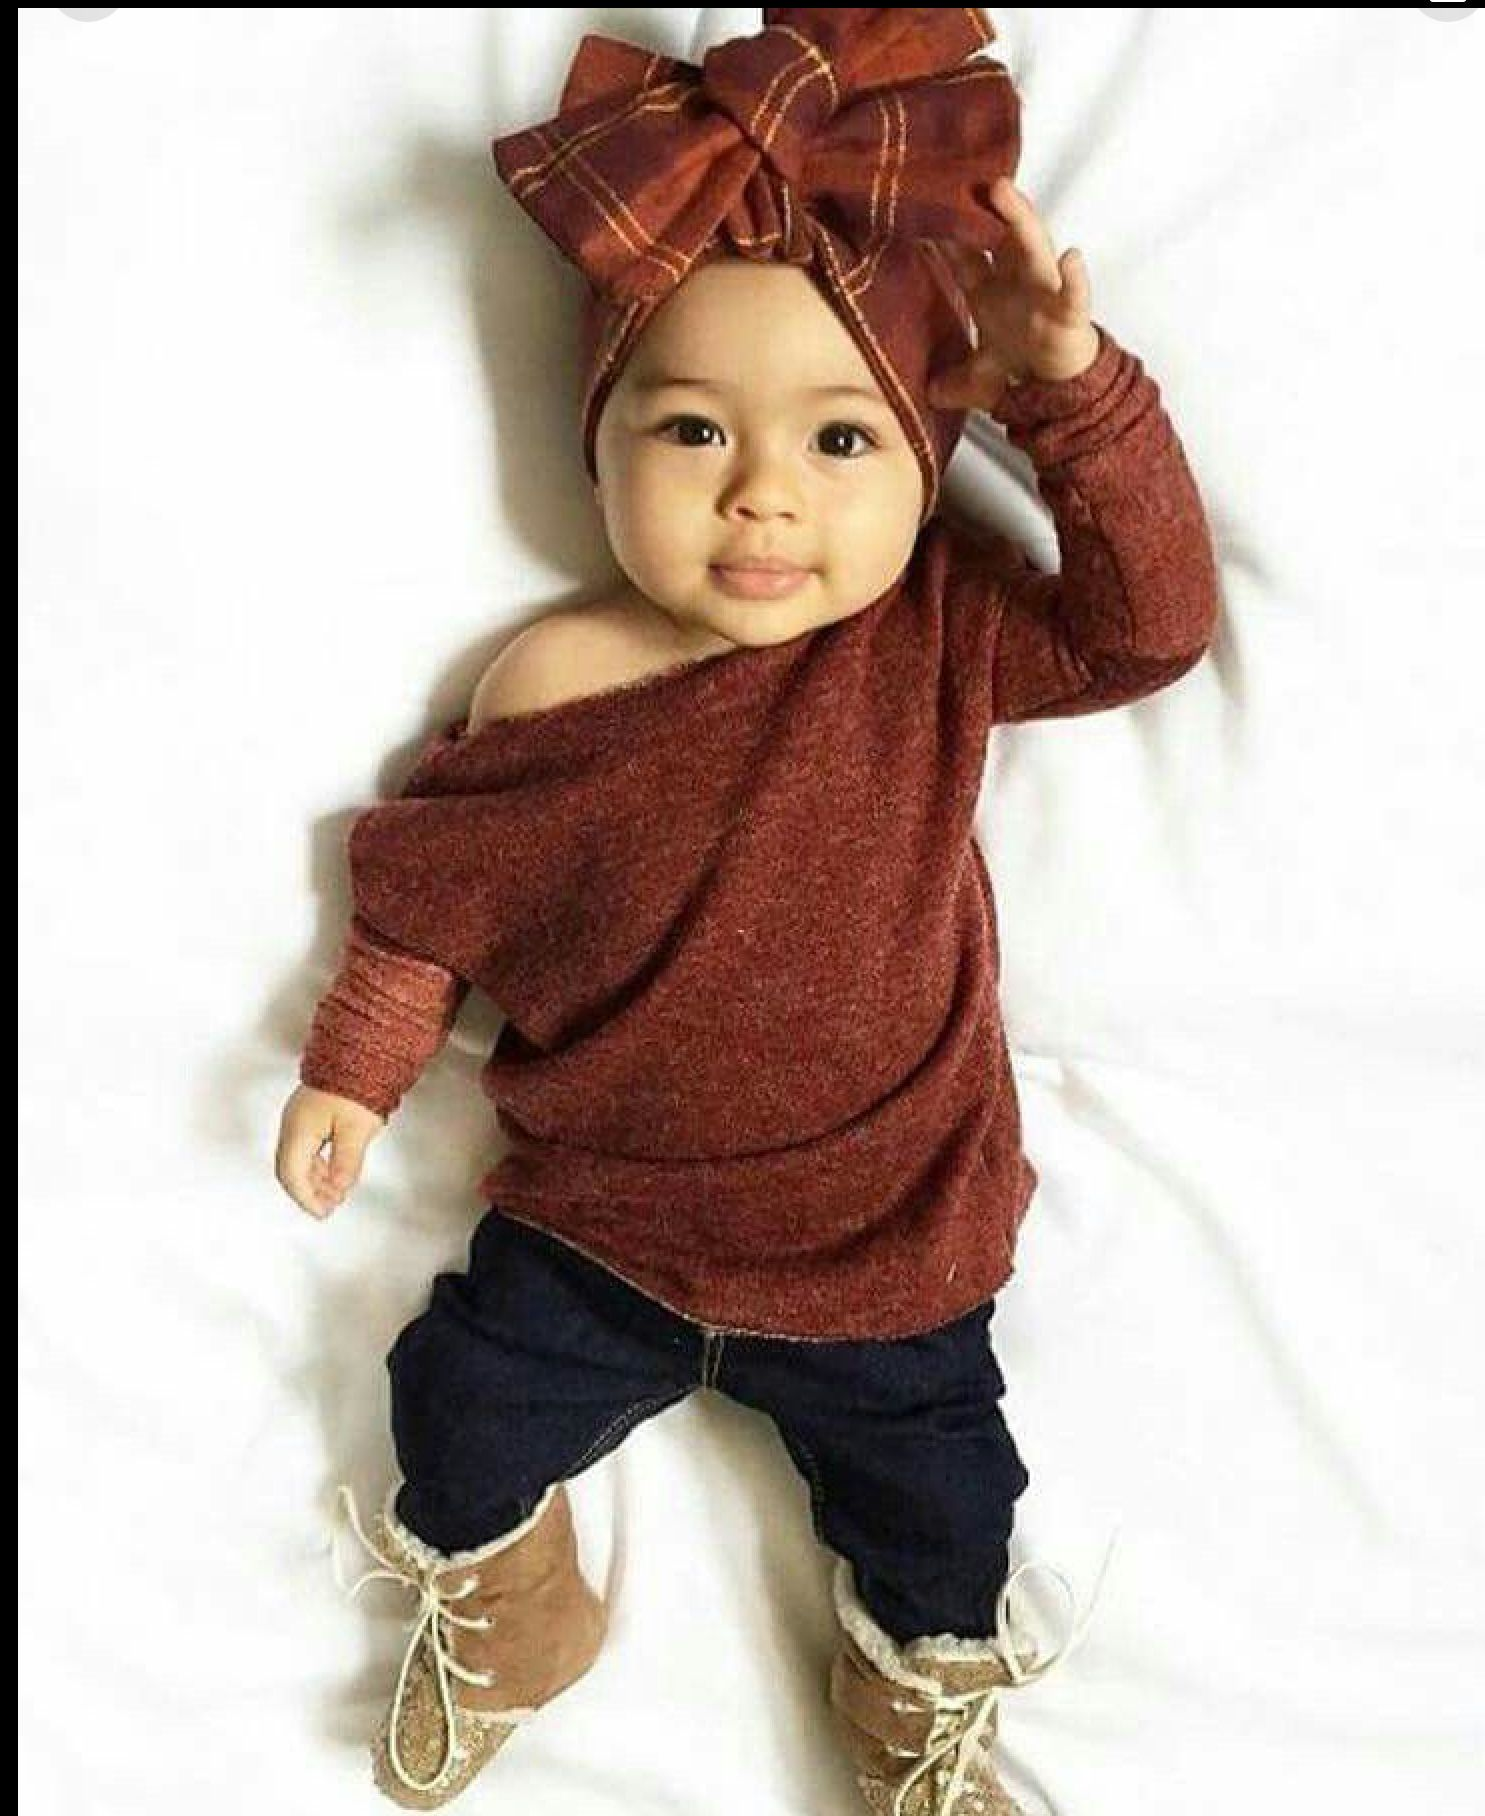 Baby fashion  Cute baby clothes, Baby girl clothes, Baby fashion